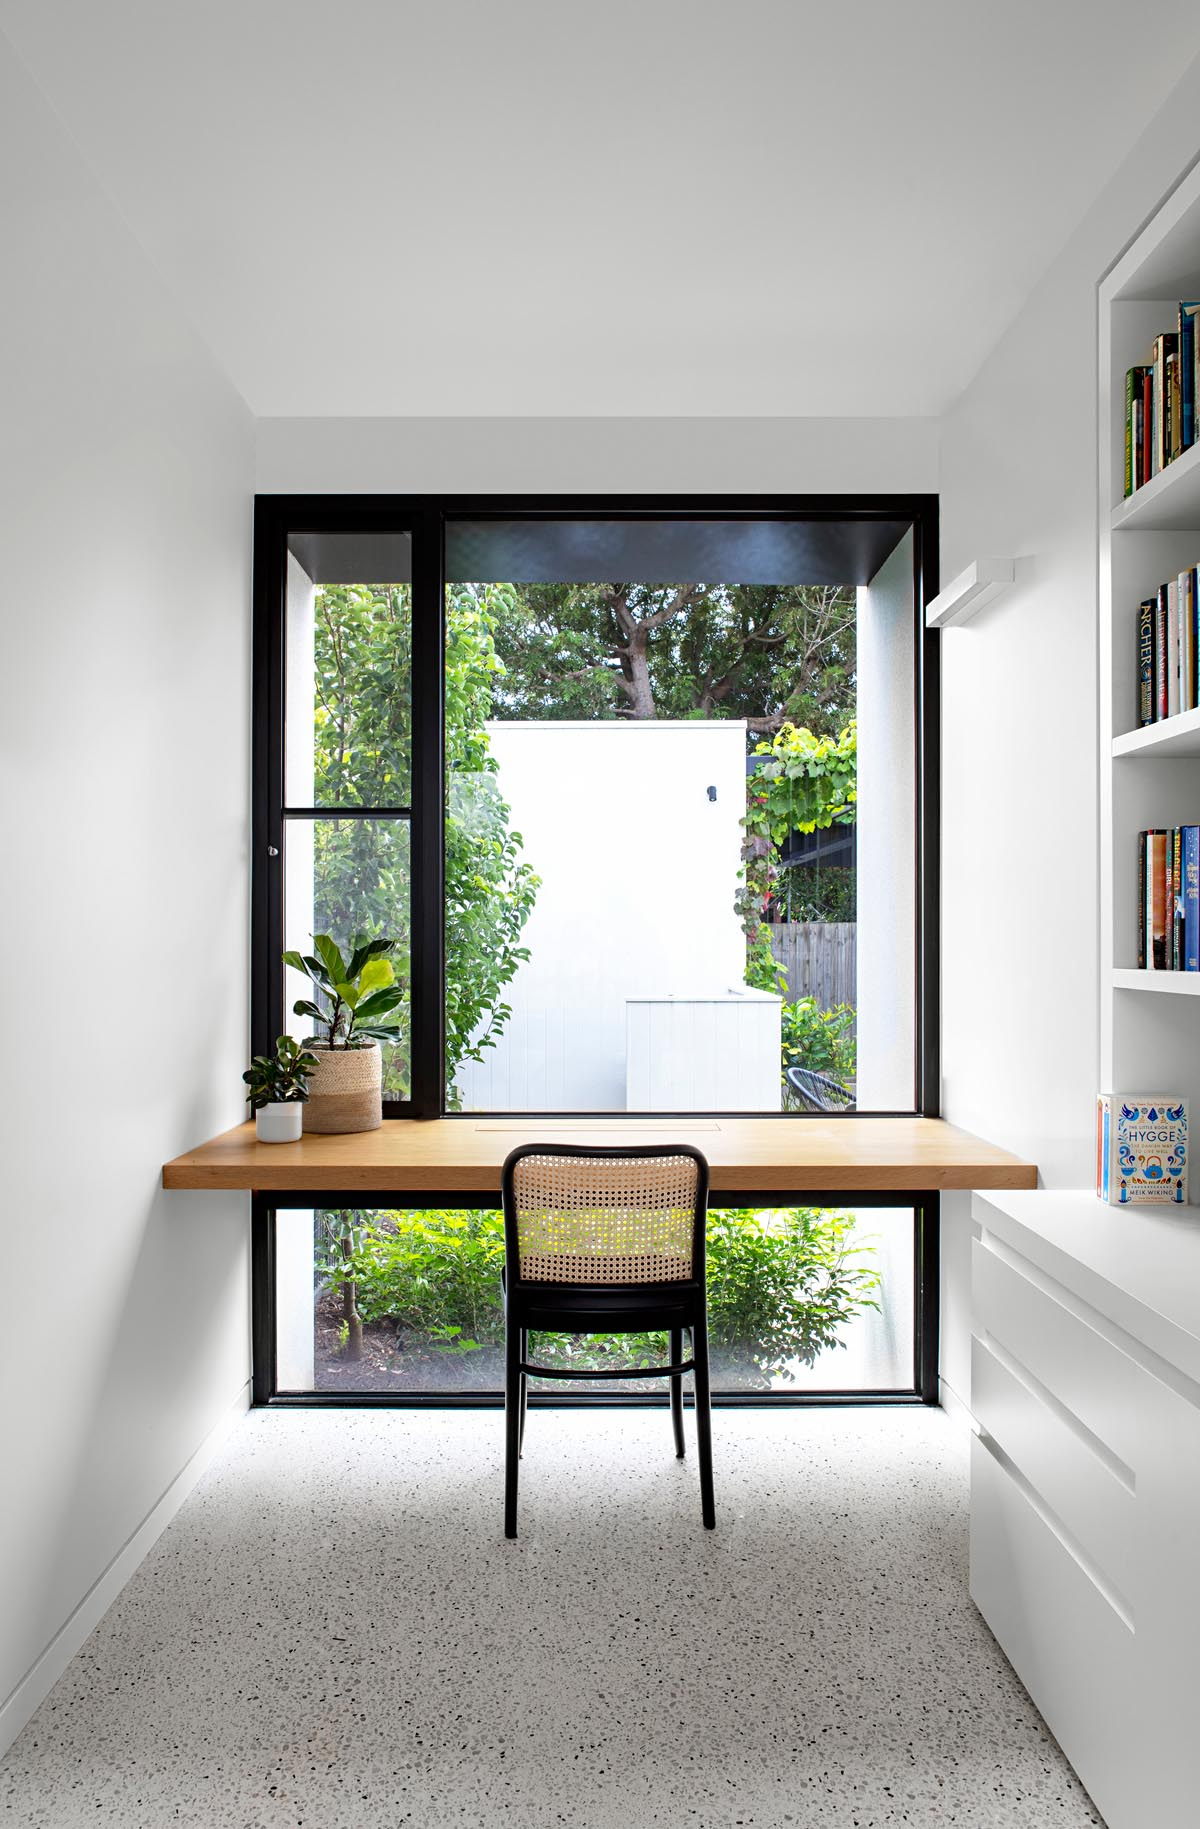 A modern home office with a solid oak wood desk that takes advantage of the window views.